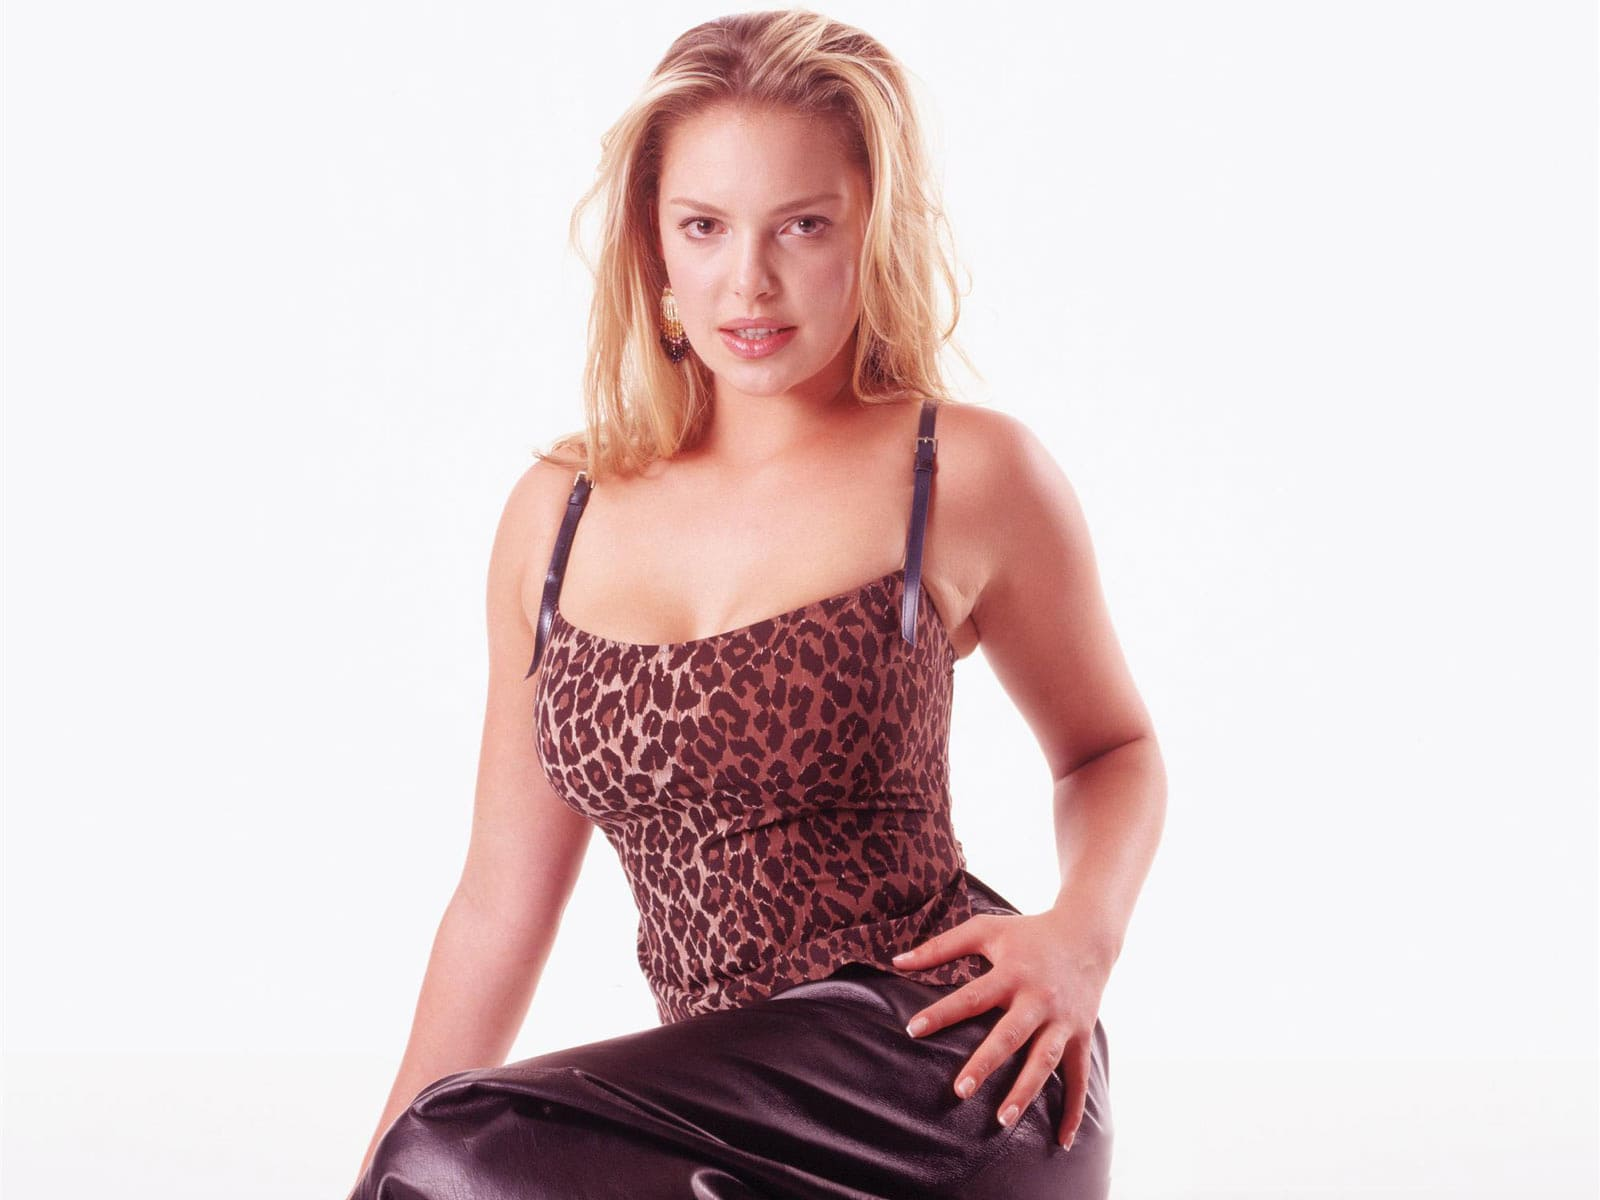 Katherine Heigl Desktop wallpaper